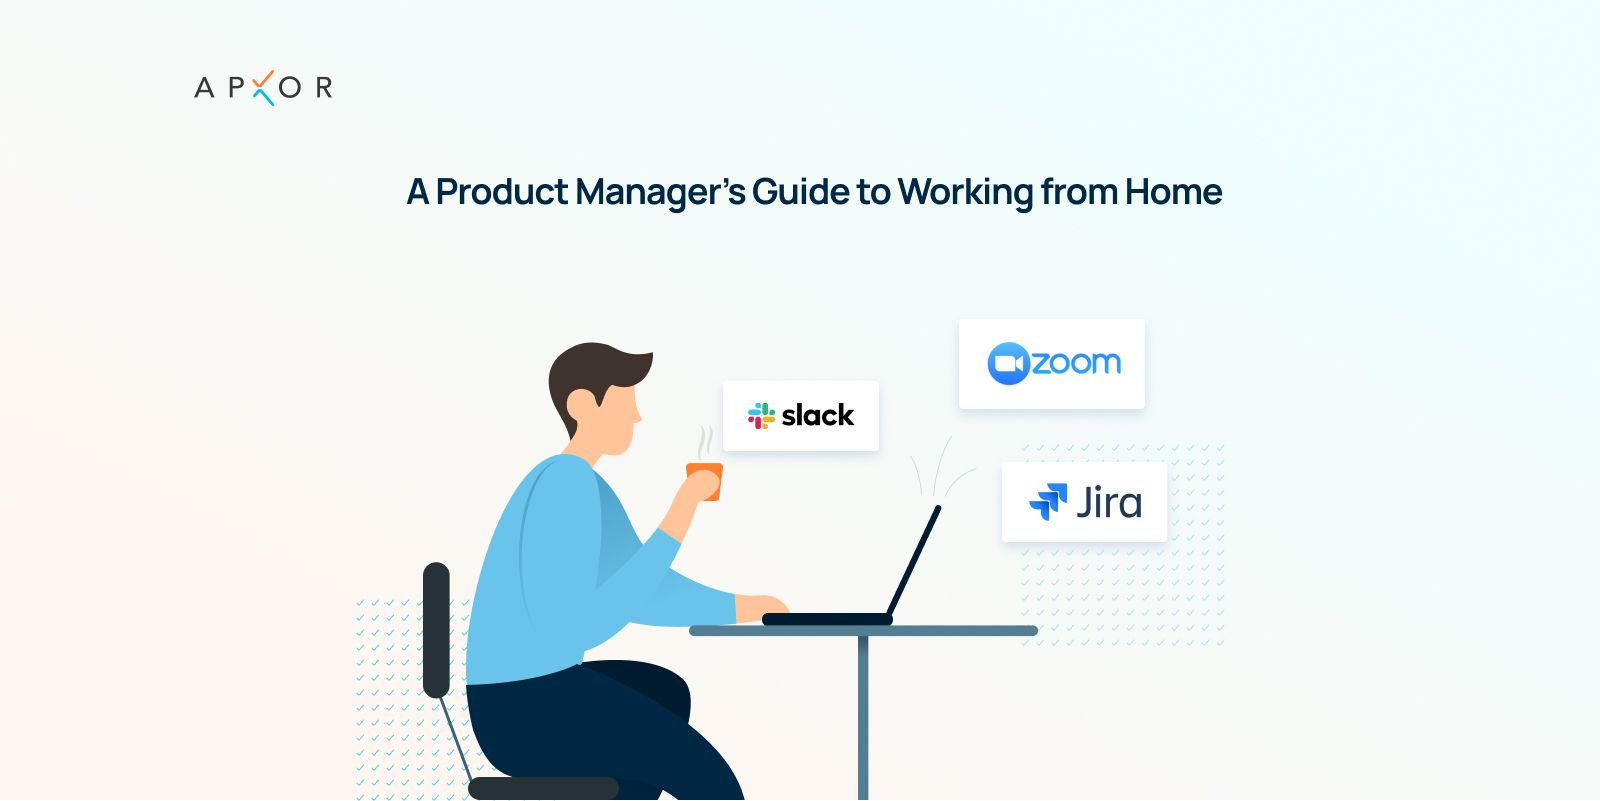 A Product Manager's Guide to Working from Home